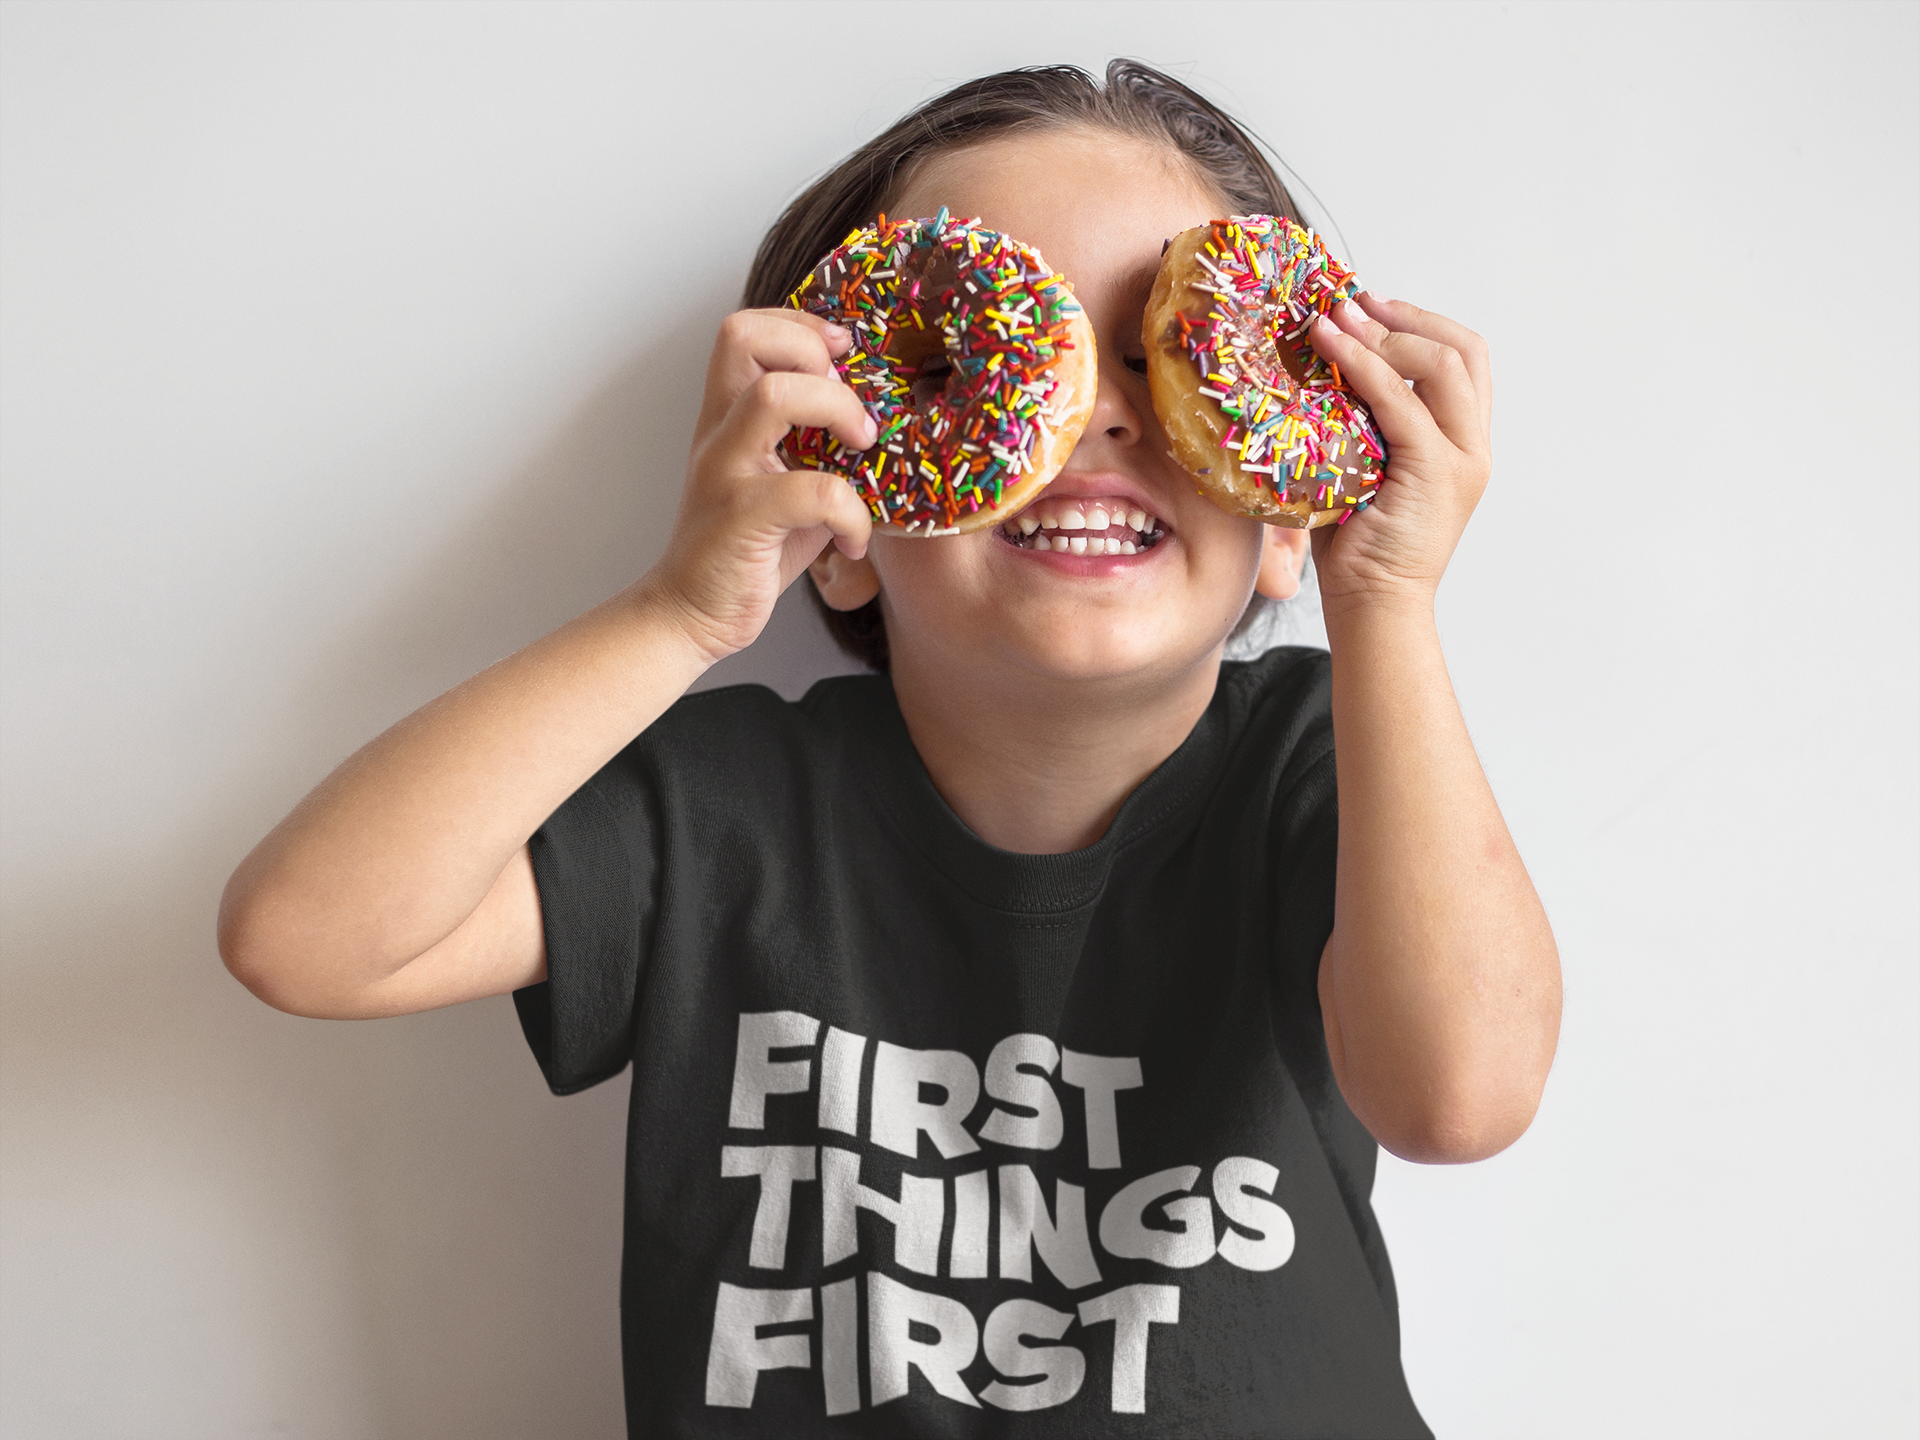 boy-playing-with-donuts-while-wearing-a-t-shirt-mockup-against-a-white-wall-a16139.png